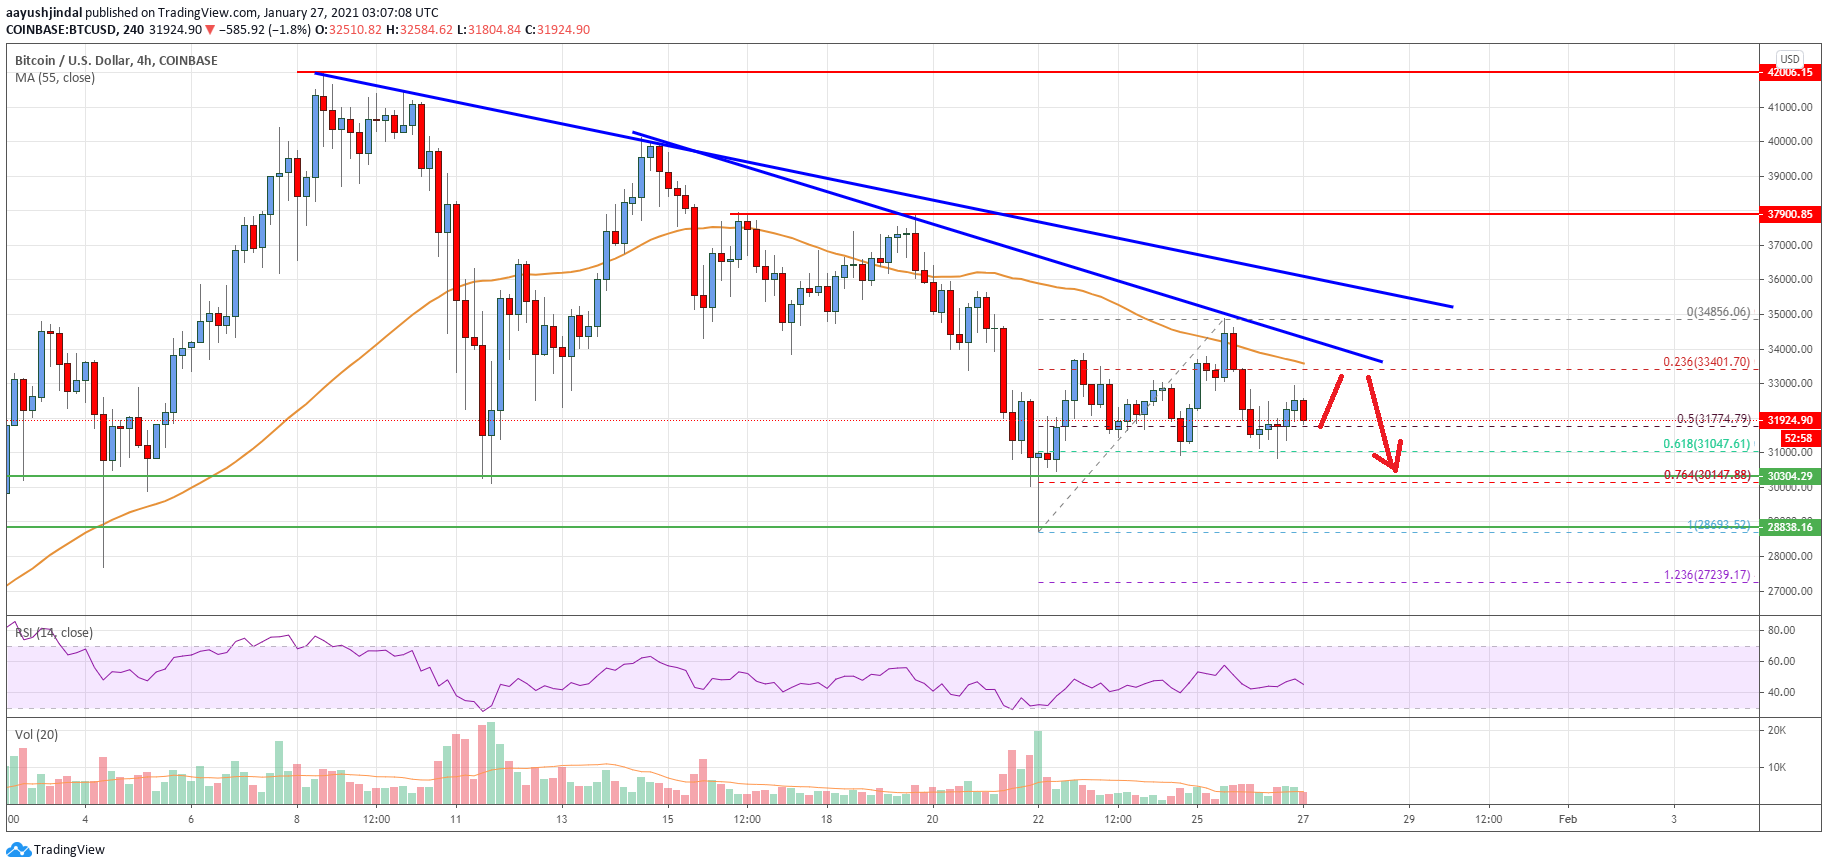 Bitcoin Price Analysis: BTC Could Extend Losses Below $30K